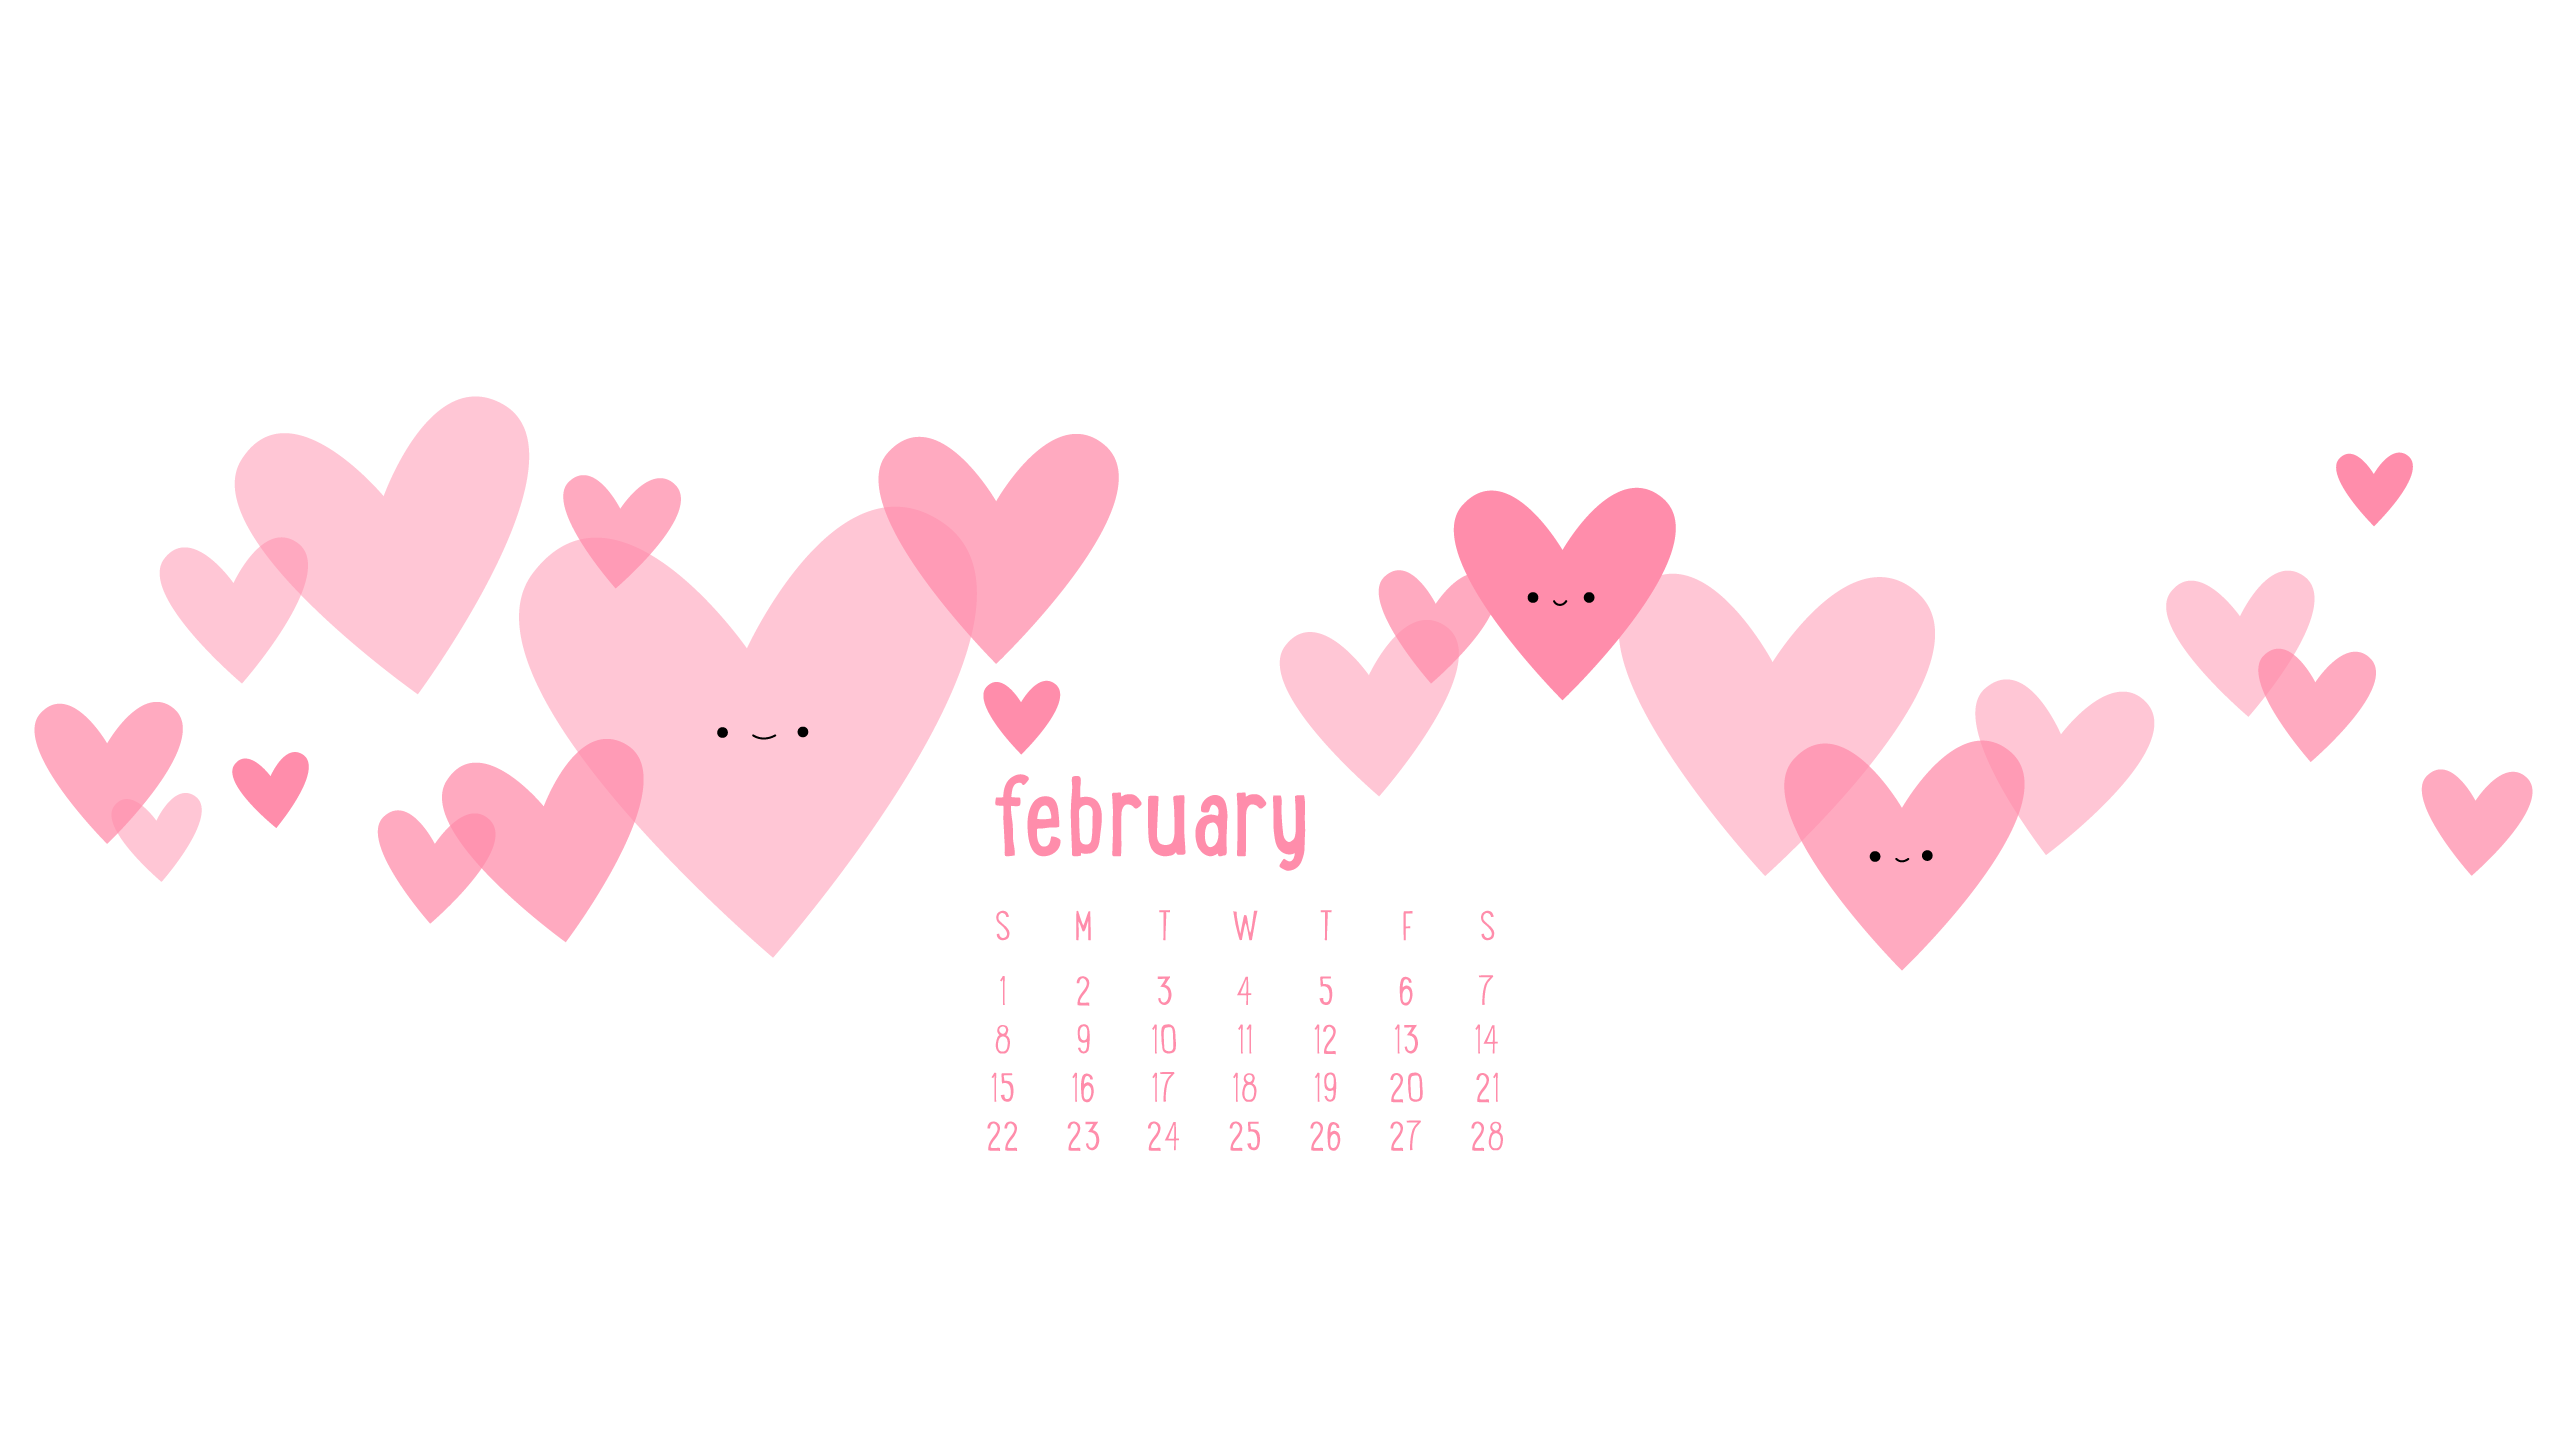 February Calendar Wallpaper Hd : February wallpapers calendar wallpaper cave